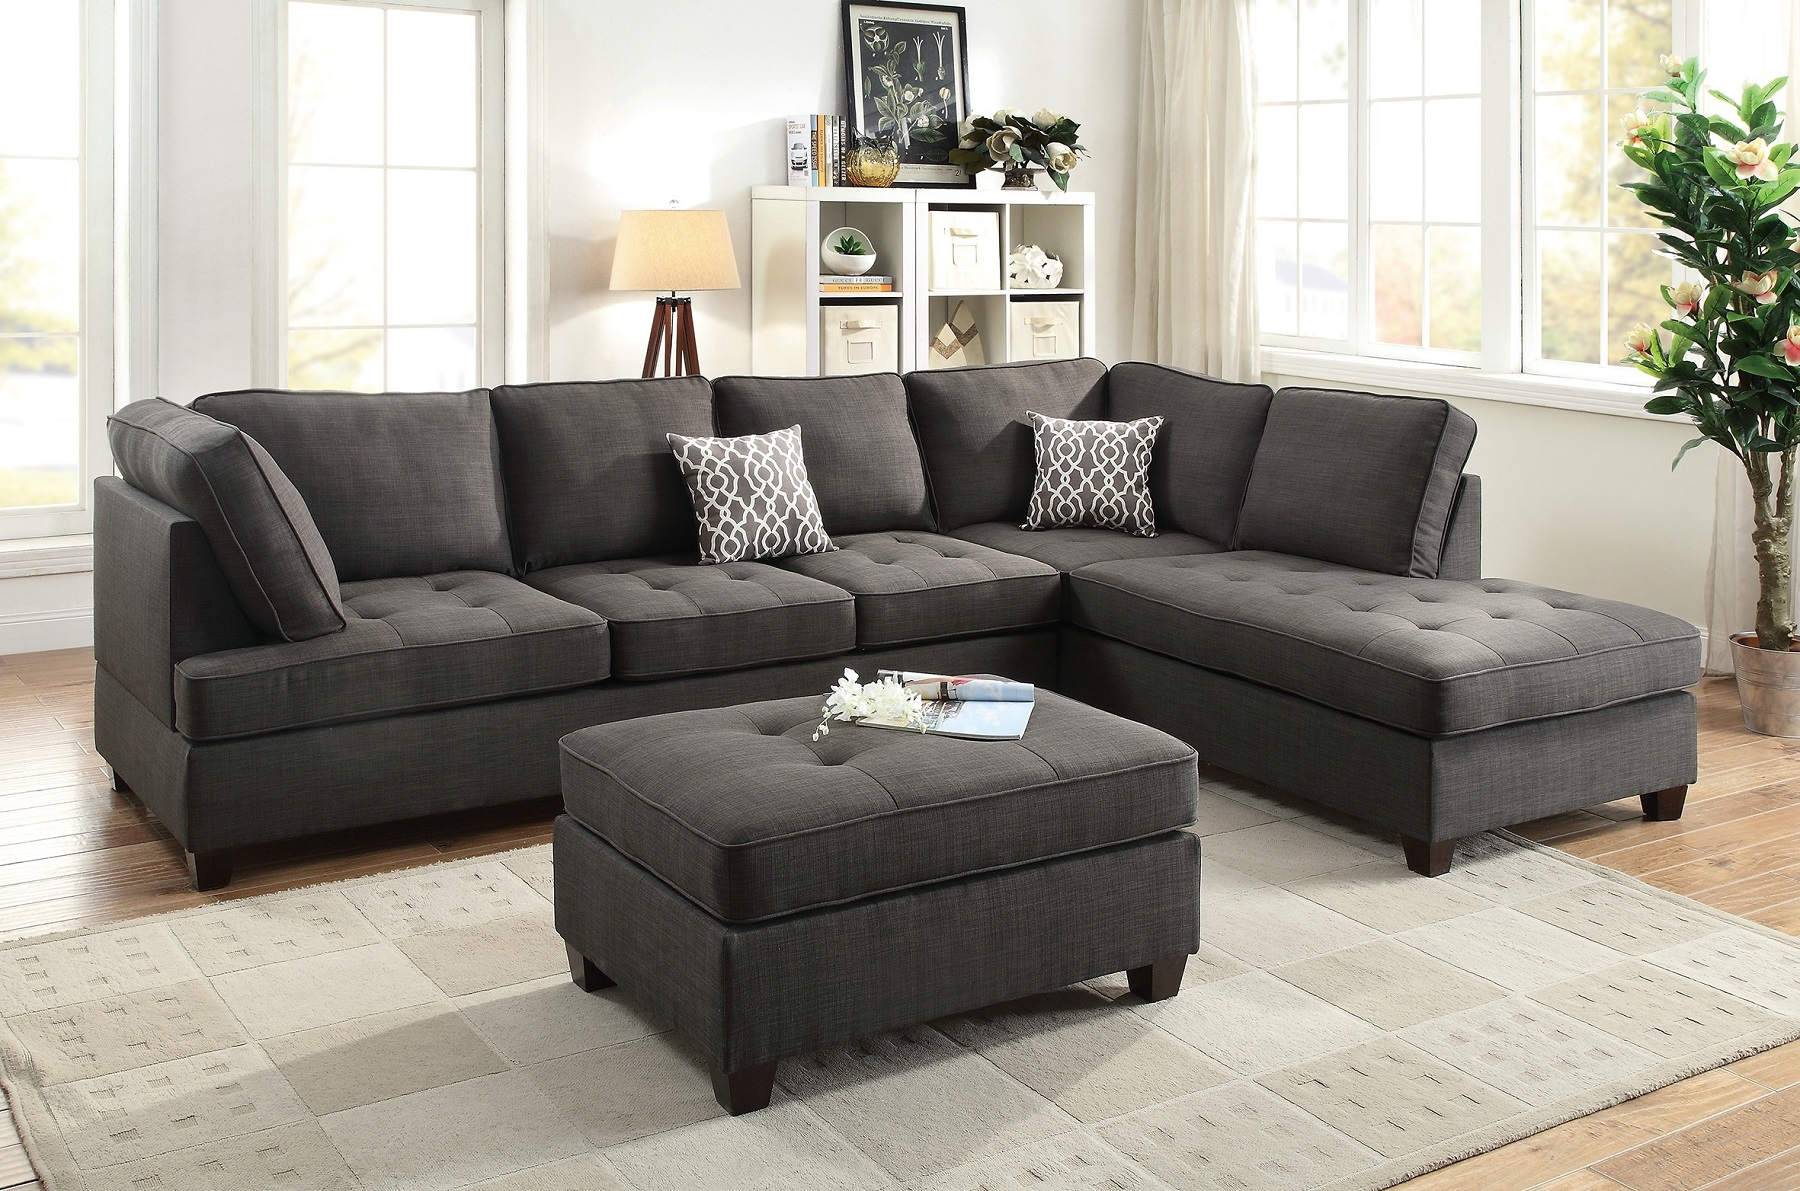 Black sectional sofa chaise poundex f6988 hot sectionals for Black fabric sectional sofa with chaise